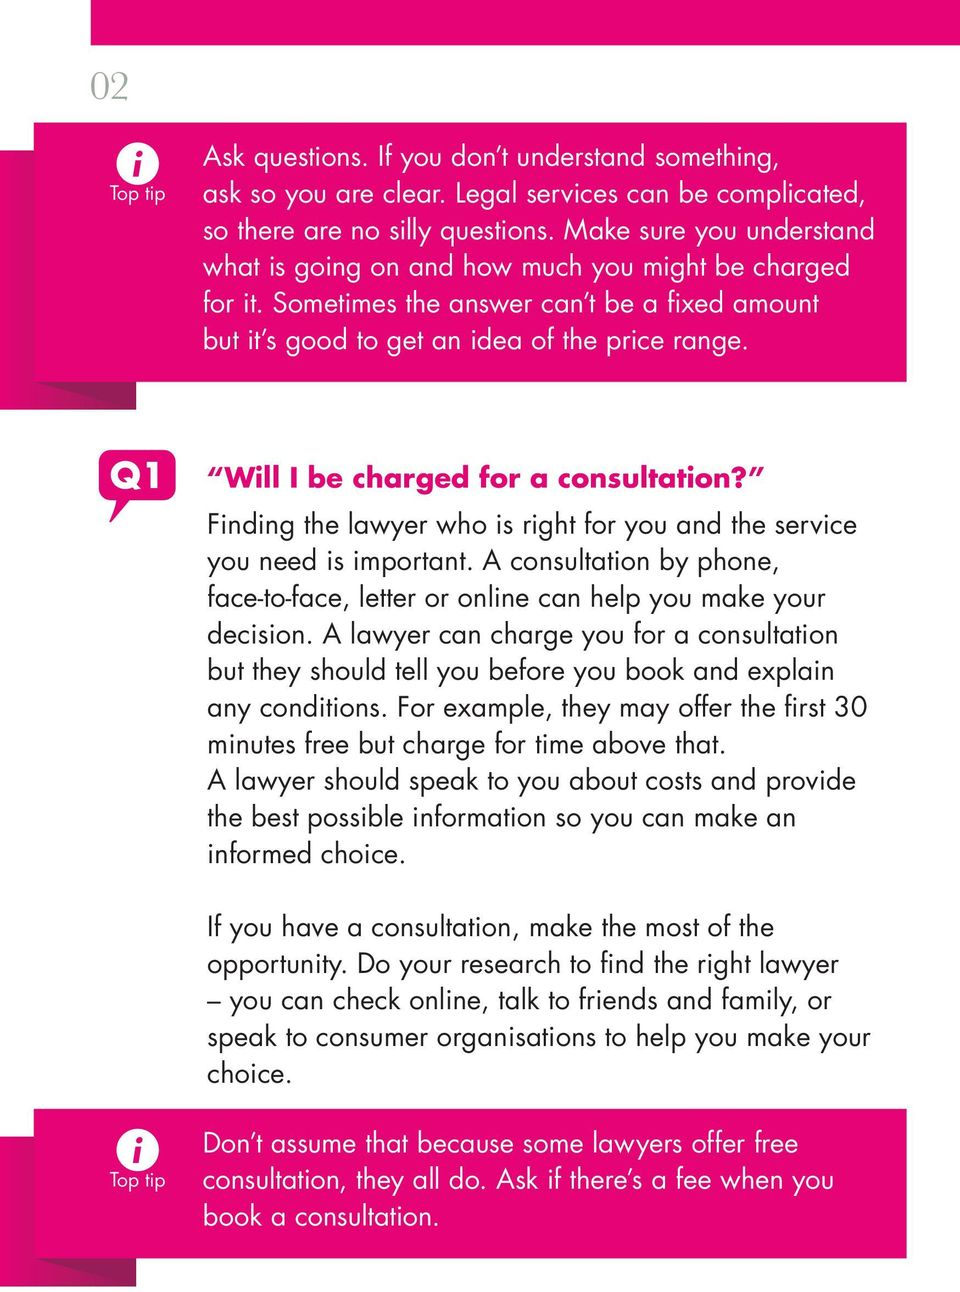 Q1 Will I be charged for a consultation? Finding the lawyer who is right for you and the service you need is important.